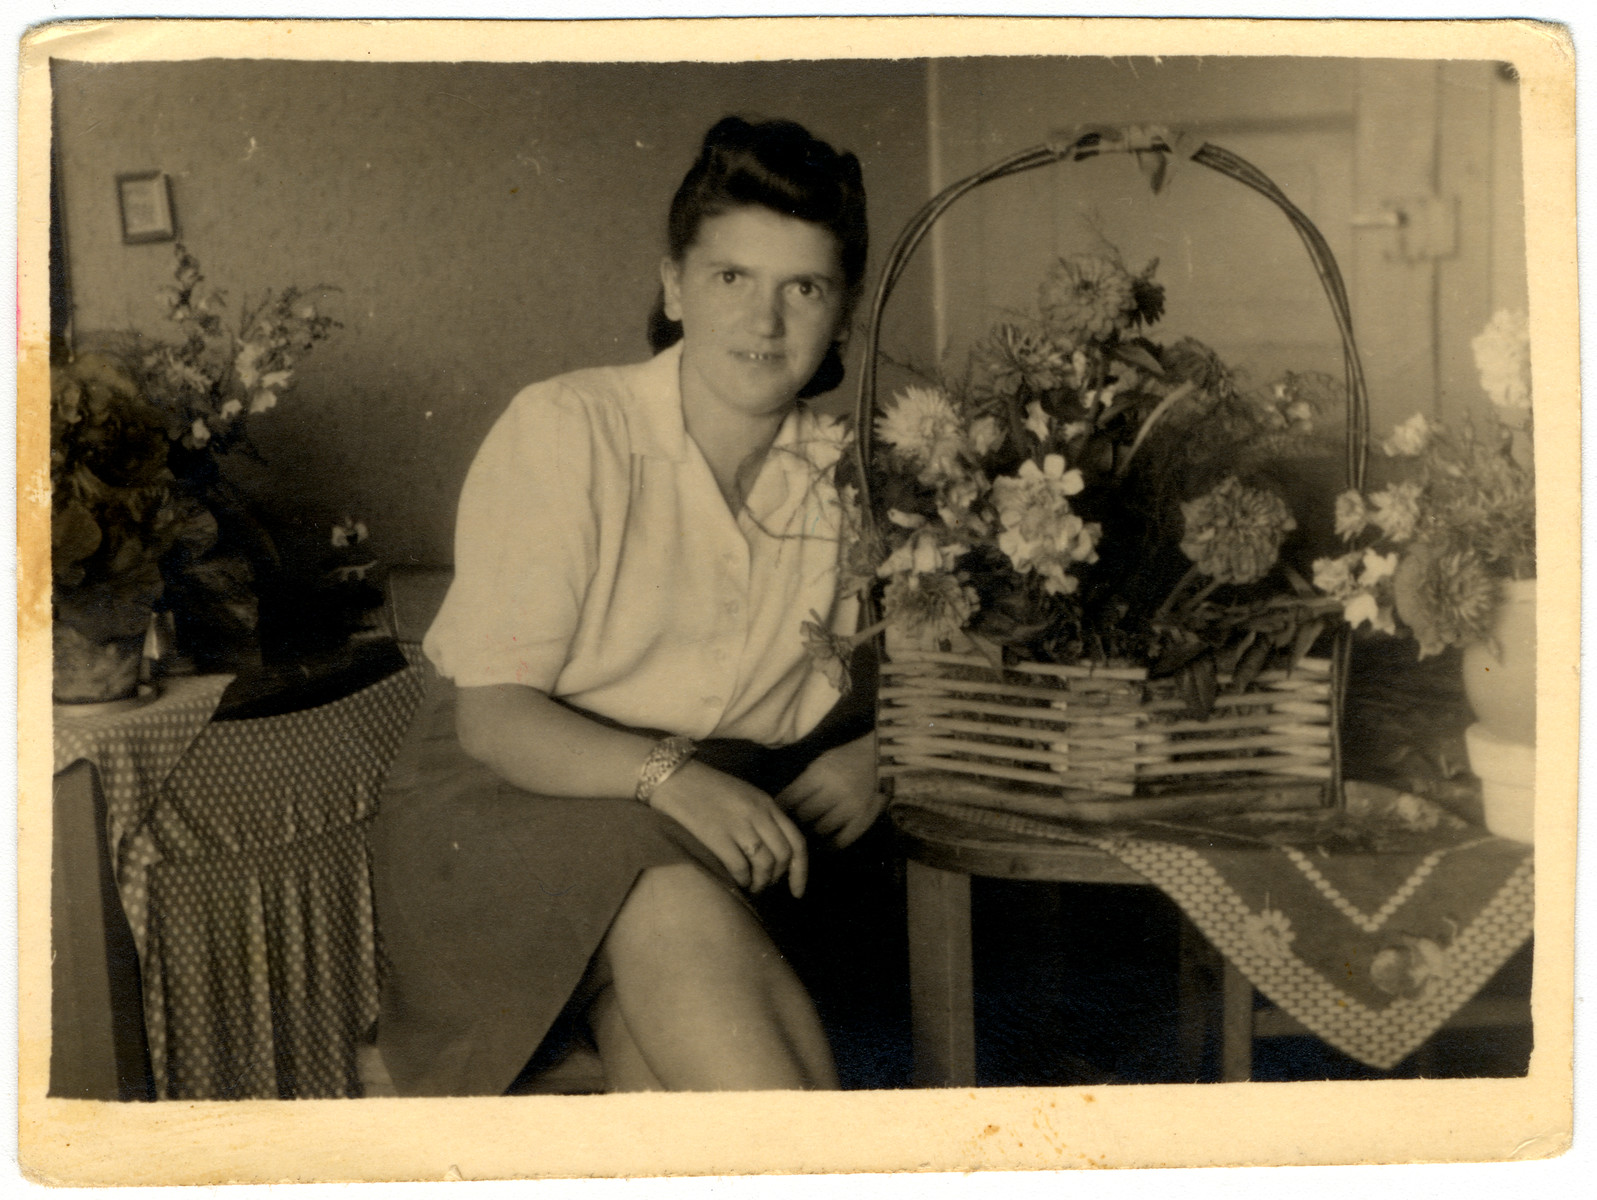 Hanka Brumer sits at a table with flowers.